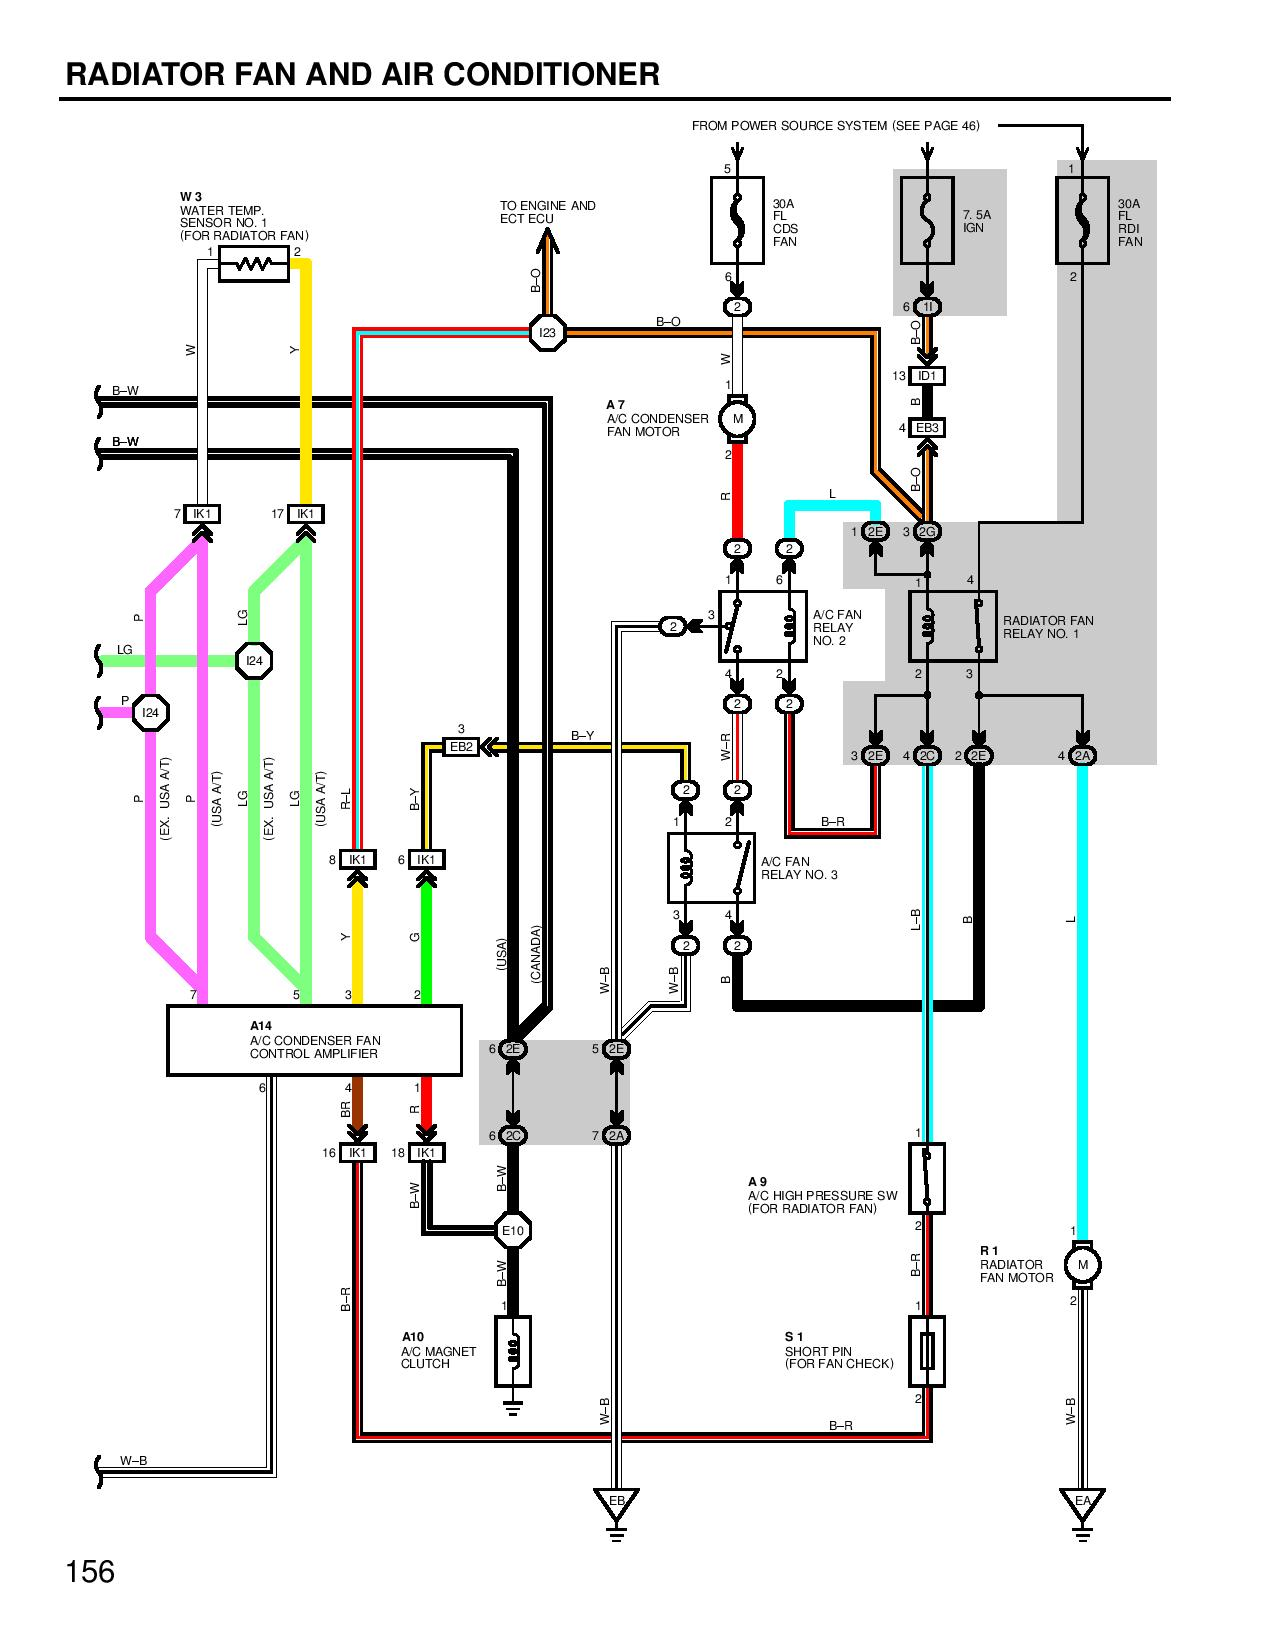 Electrical Wiring Diagram Daihatsu Cuore - Wiring Diagram Article on